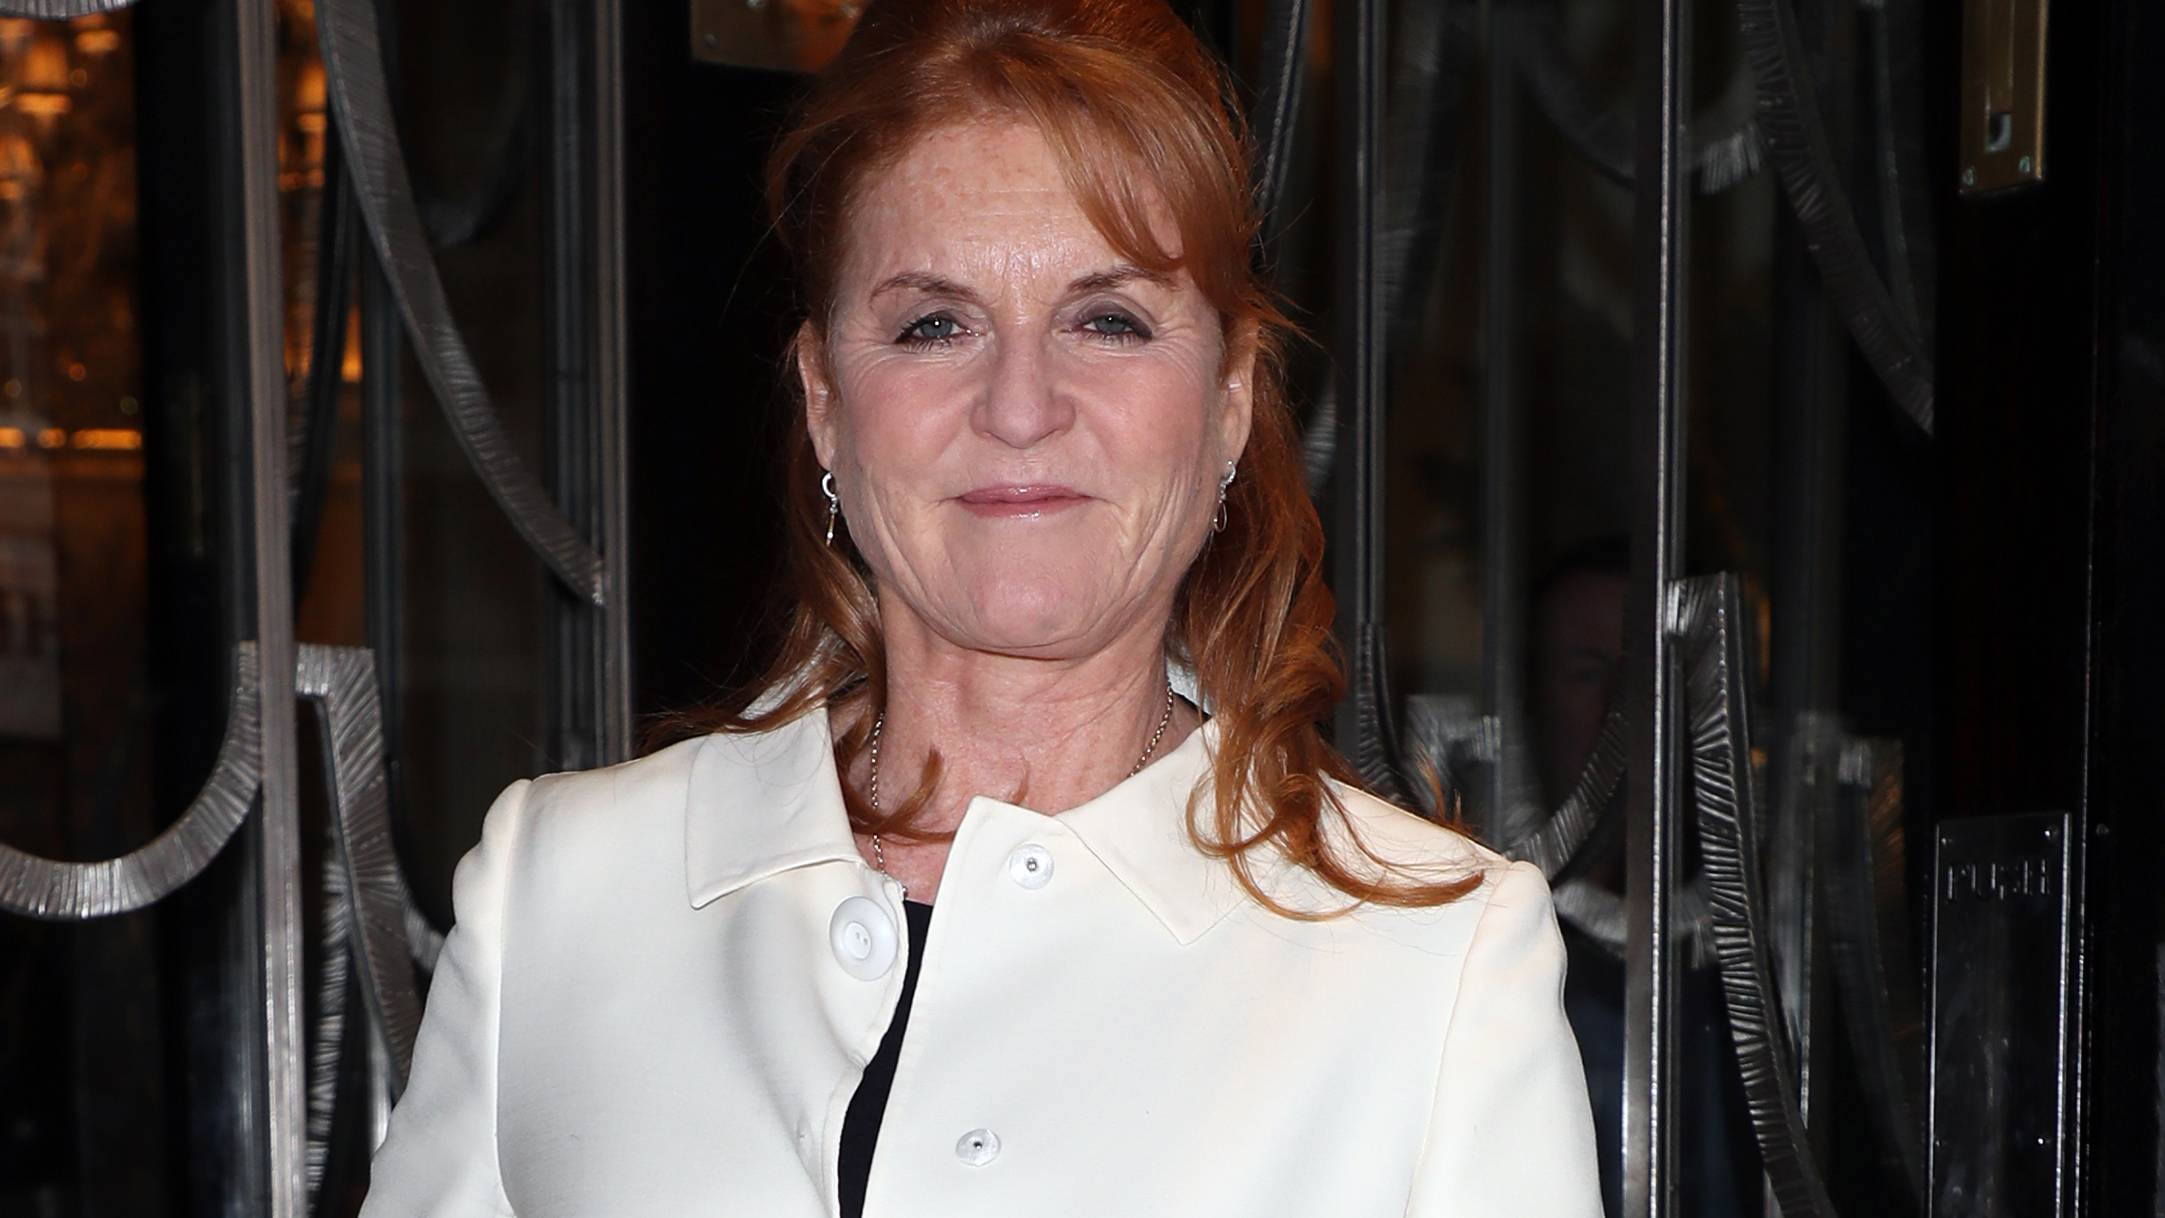 Sarah Ferguson responds to Queen Elizabeth's coronavirus address - Fox News